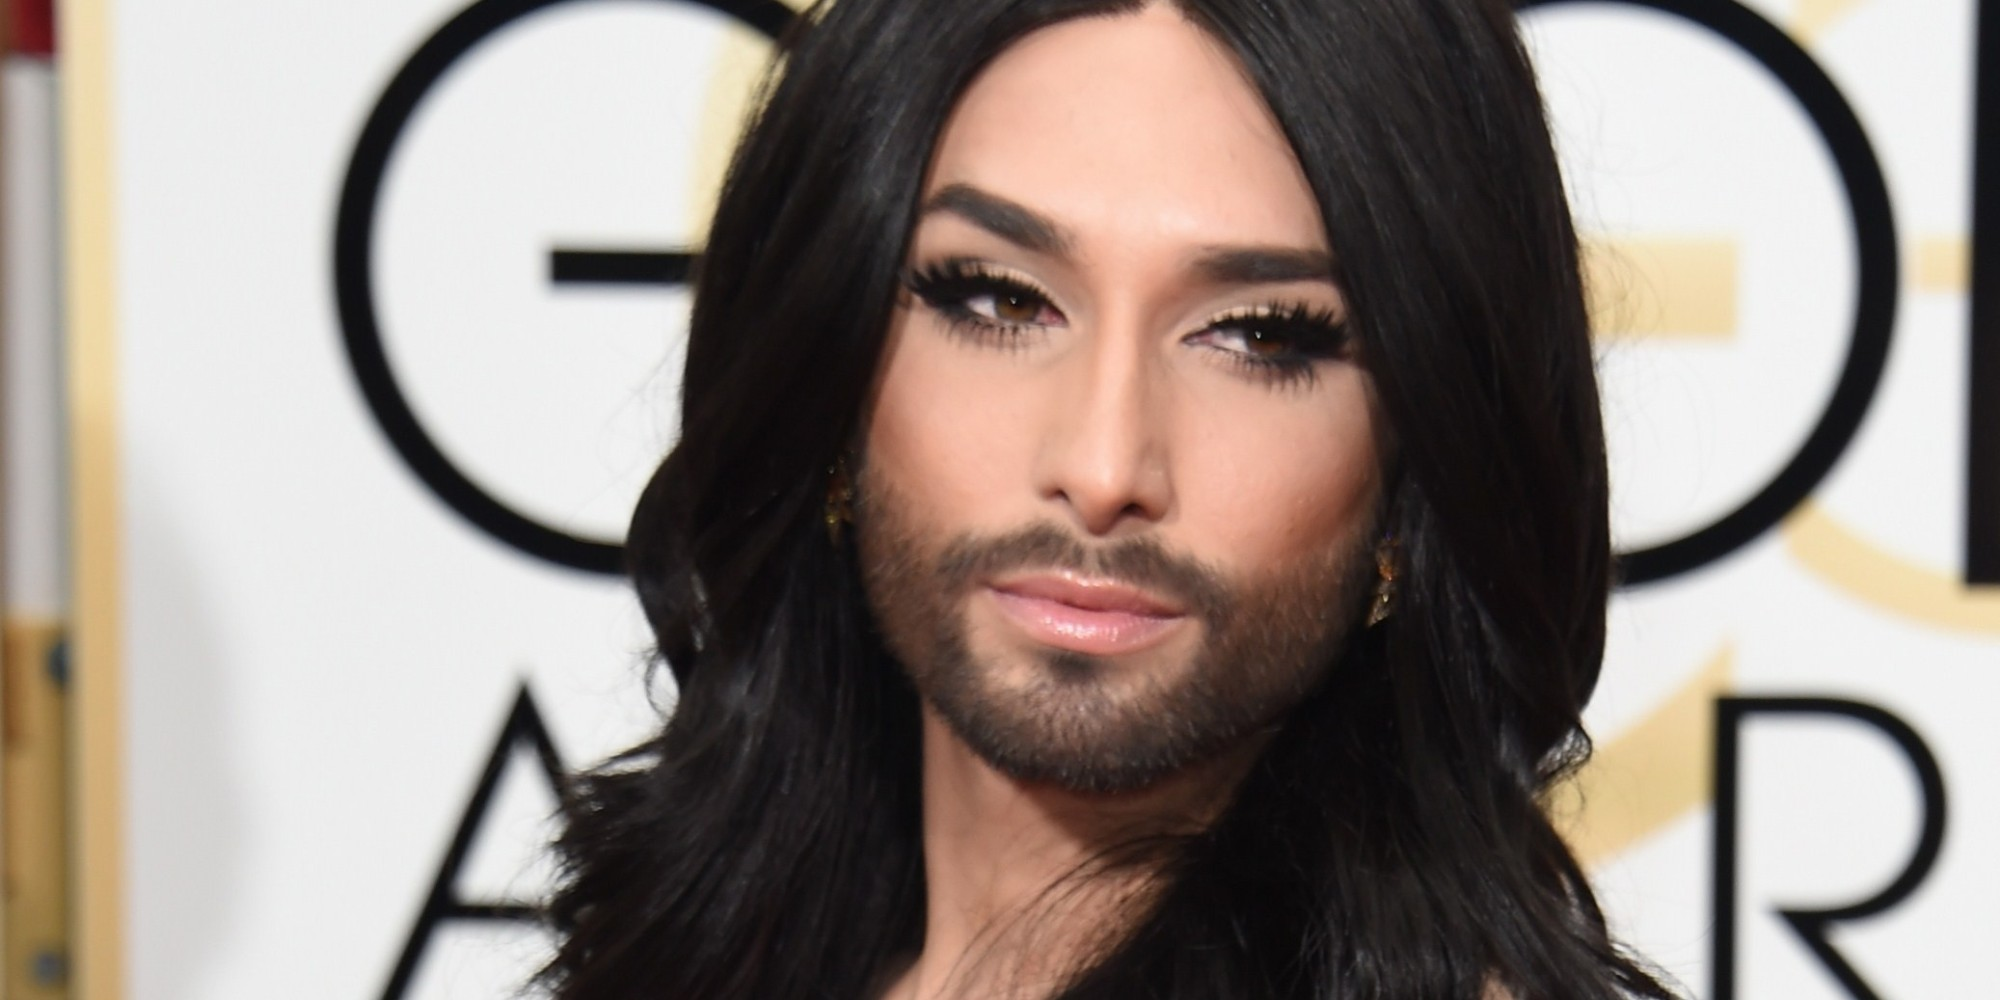 Conchita wurst and dana international in eurovision first star - Conchita Wurst Conchita Wurst Stuns On The Golden Globes Red Carpet